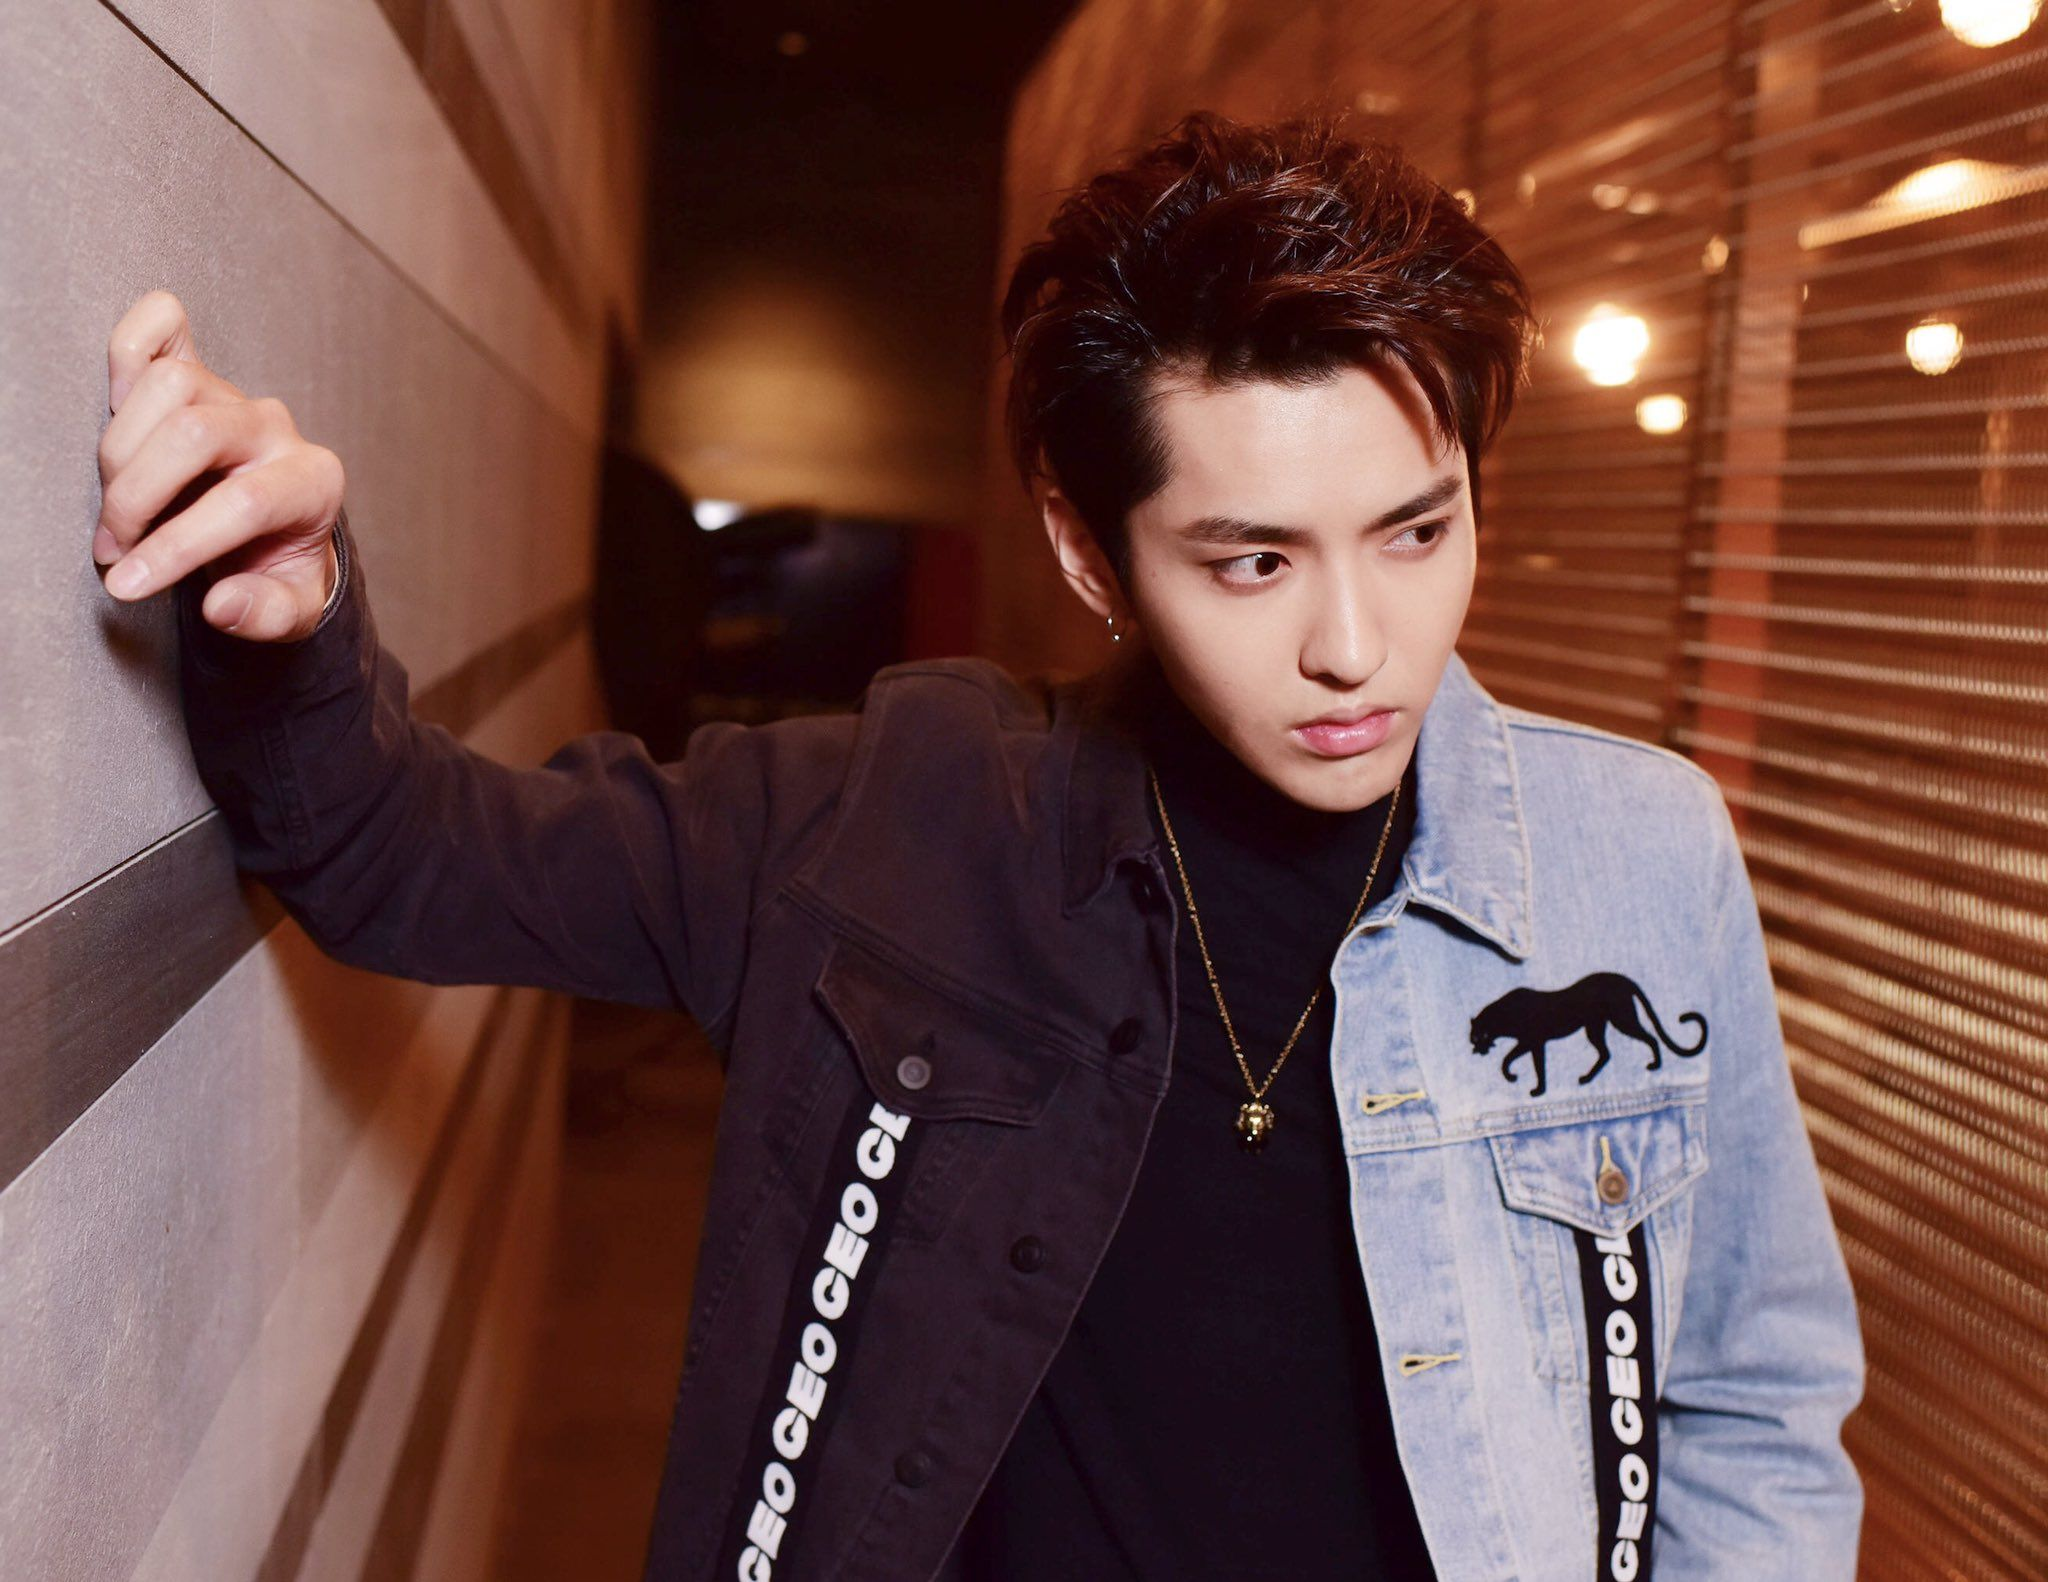 Chinese Paparazzi Continues To Spread Rumors, This Time About Kris